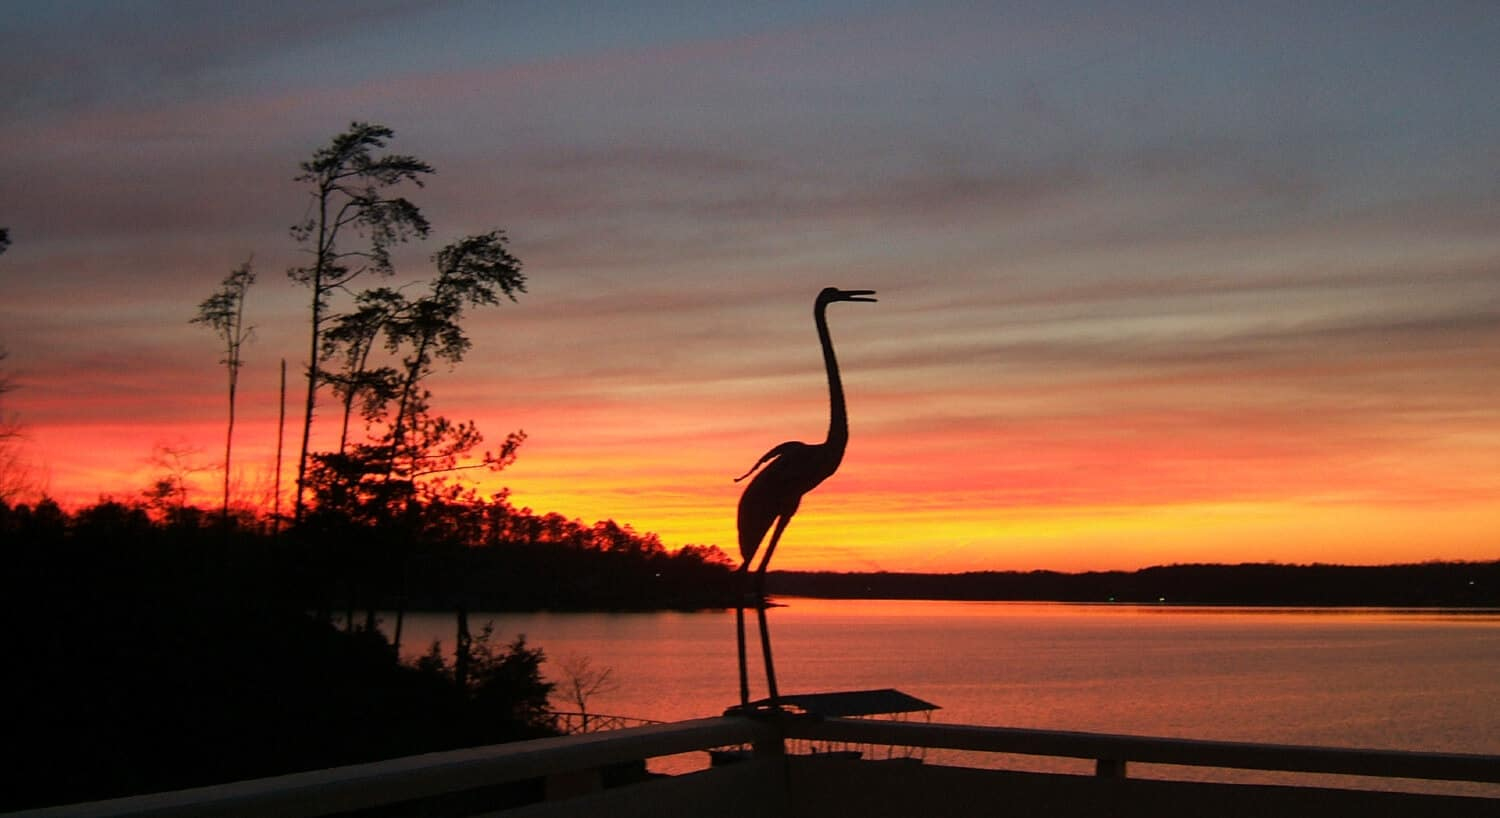 A crane stands on the edge of a deck rail against the background of a stunning sunset, with palm trees in the background.